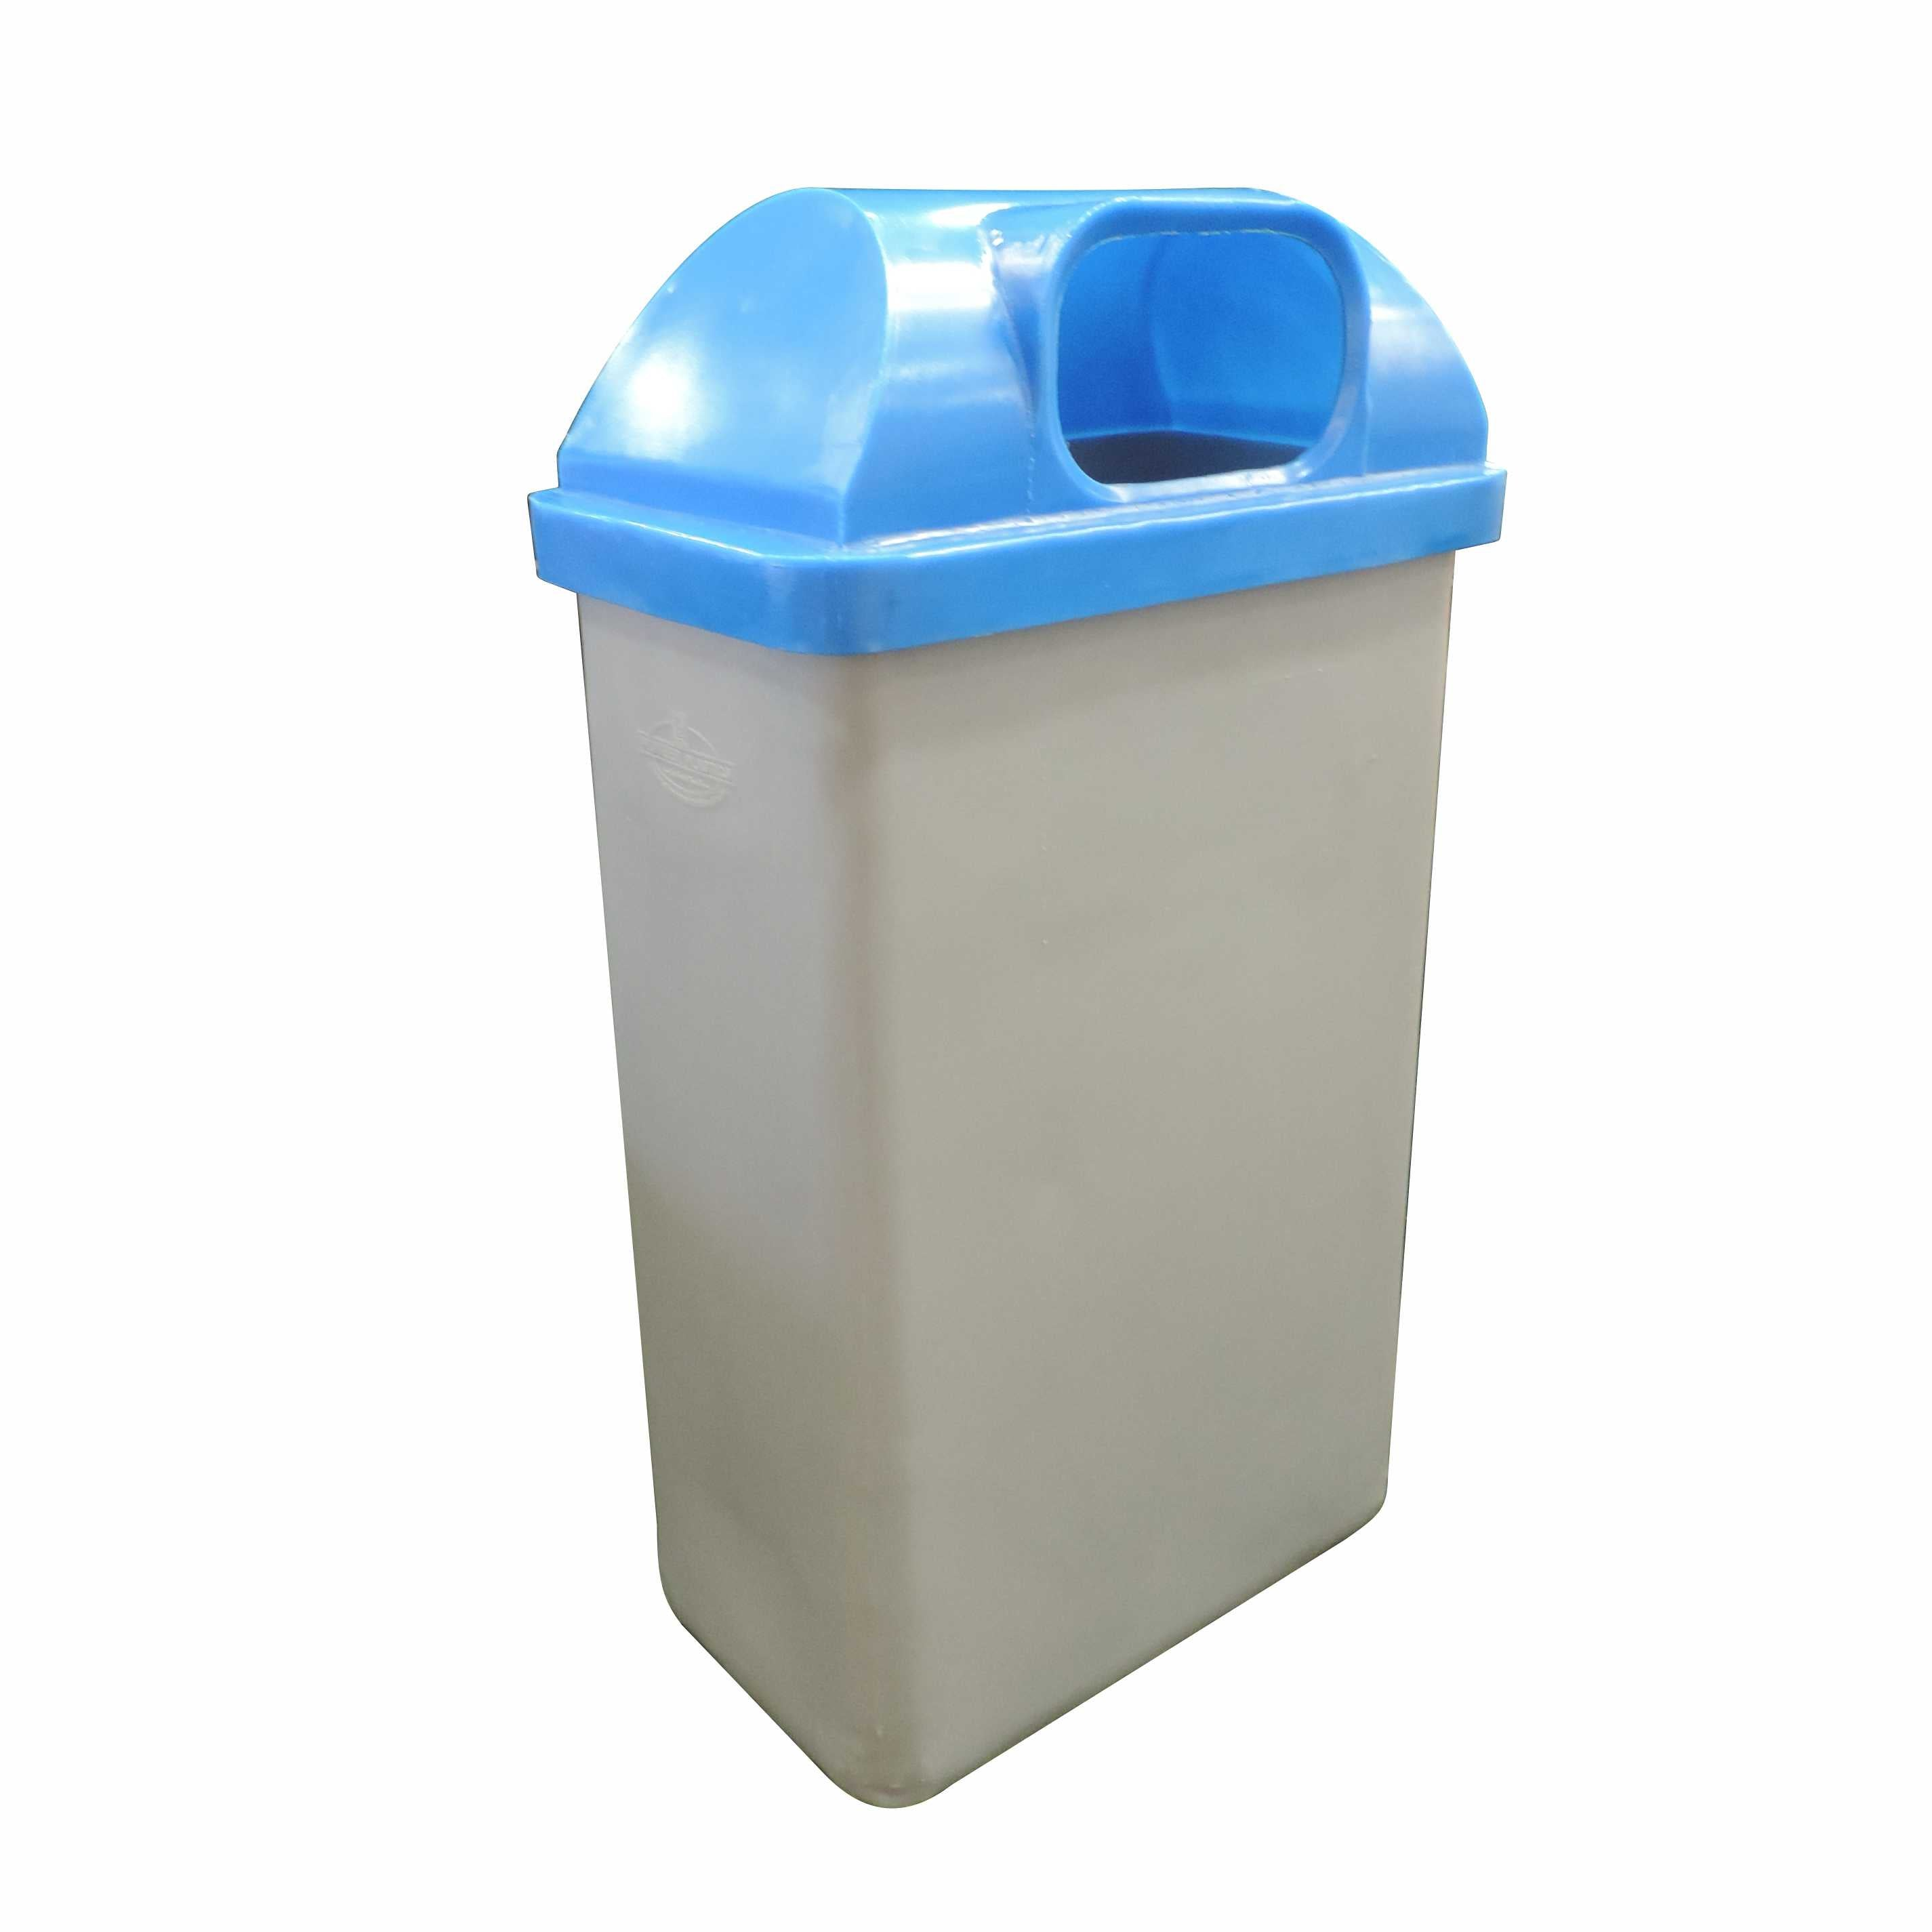 50L Rectangular Recycle Bin